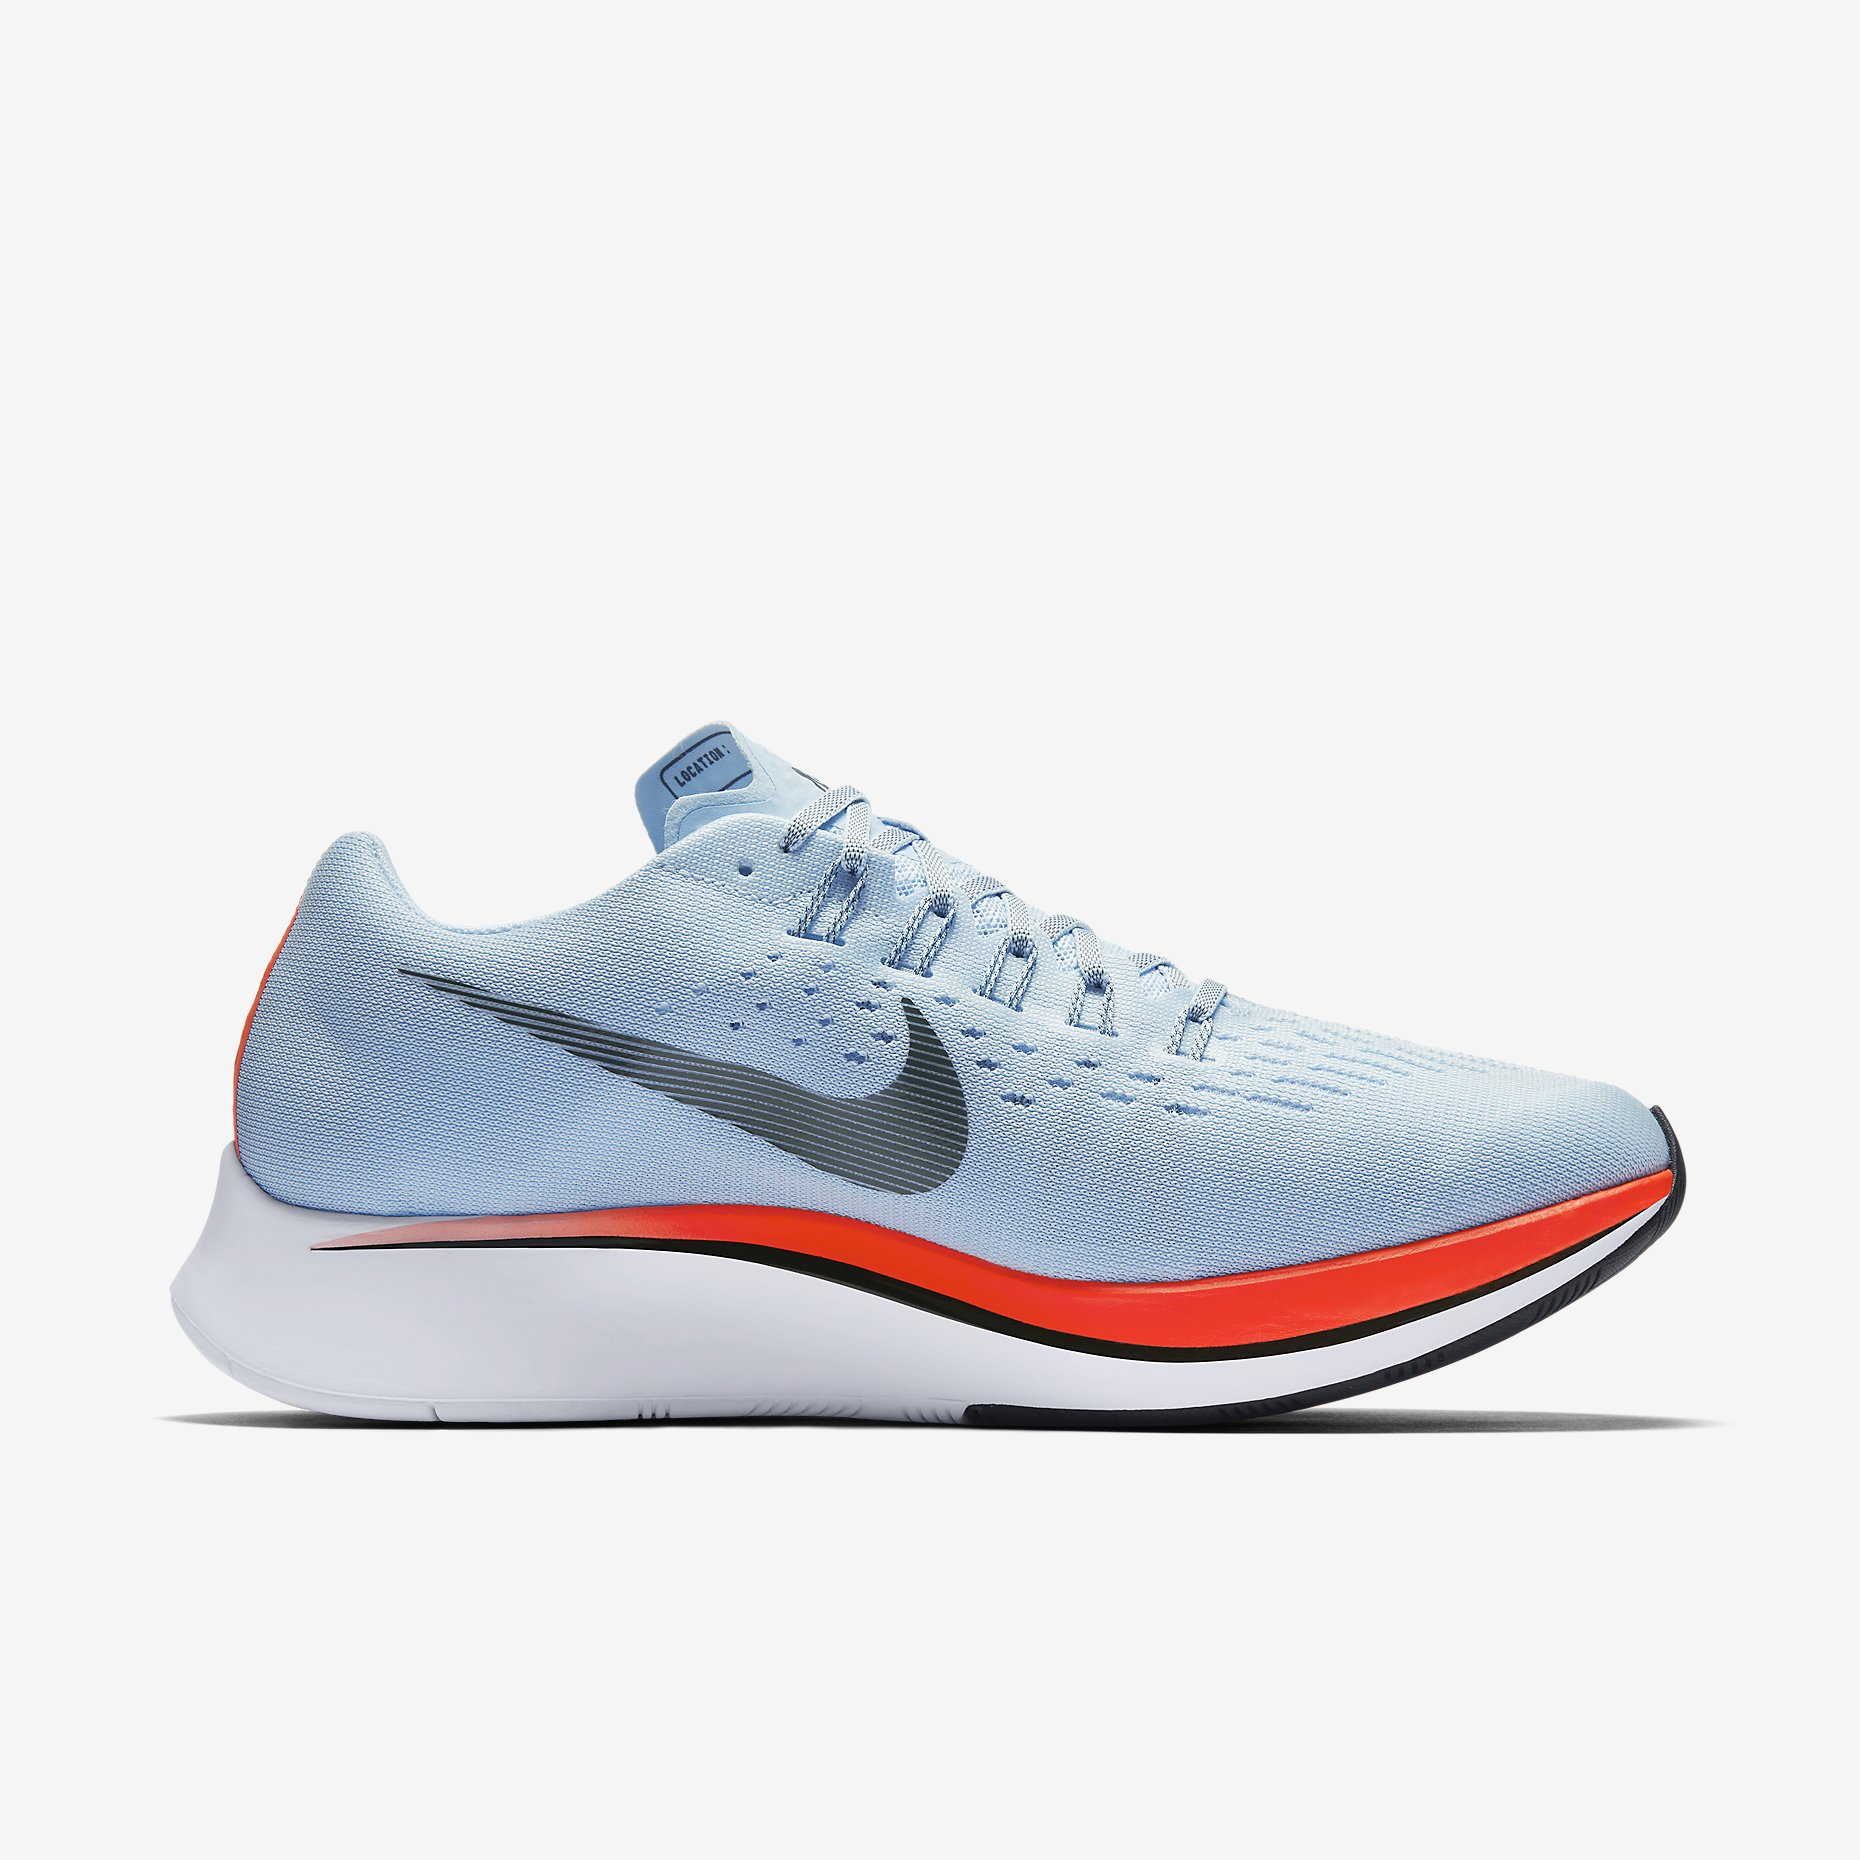 64e97e97c508 Nike Zoom Fly Men s Running Shoe - Sub 2 - Alton Sports